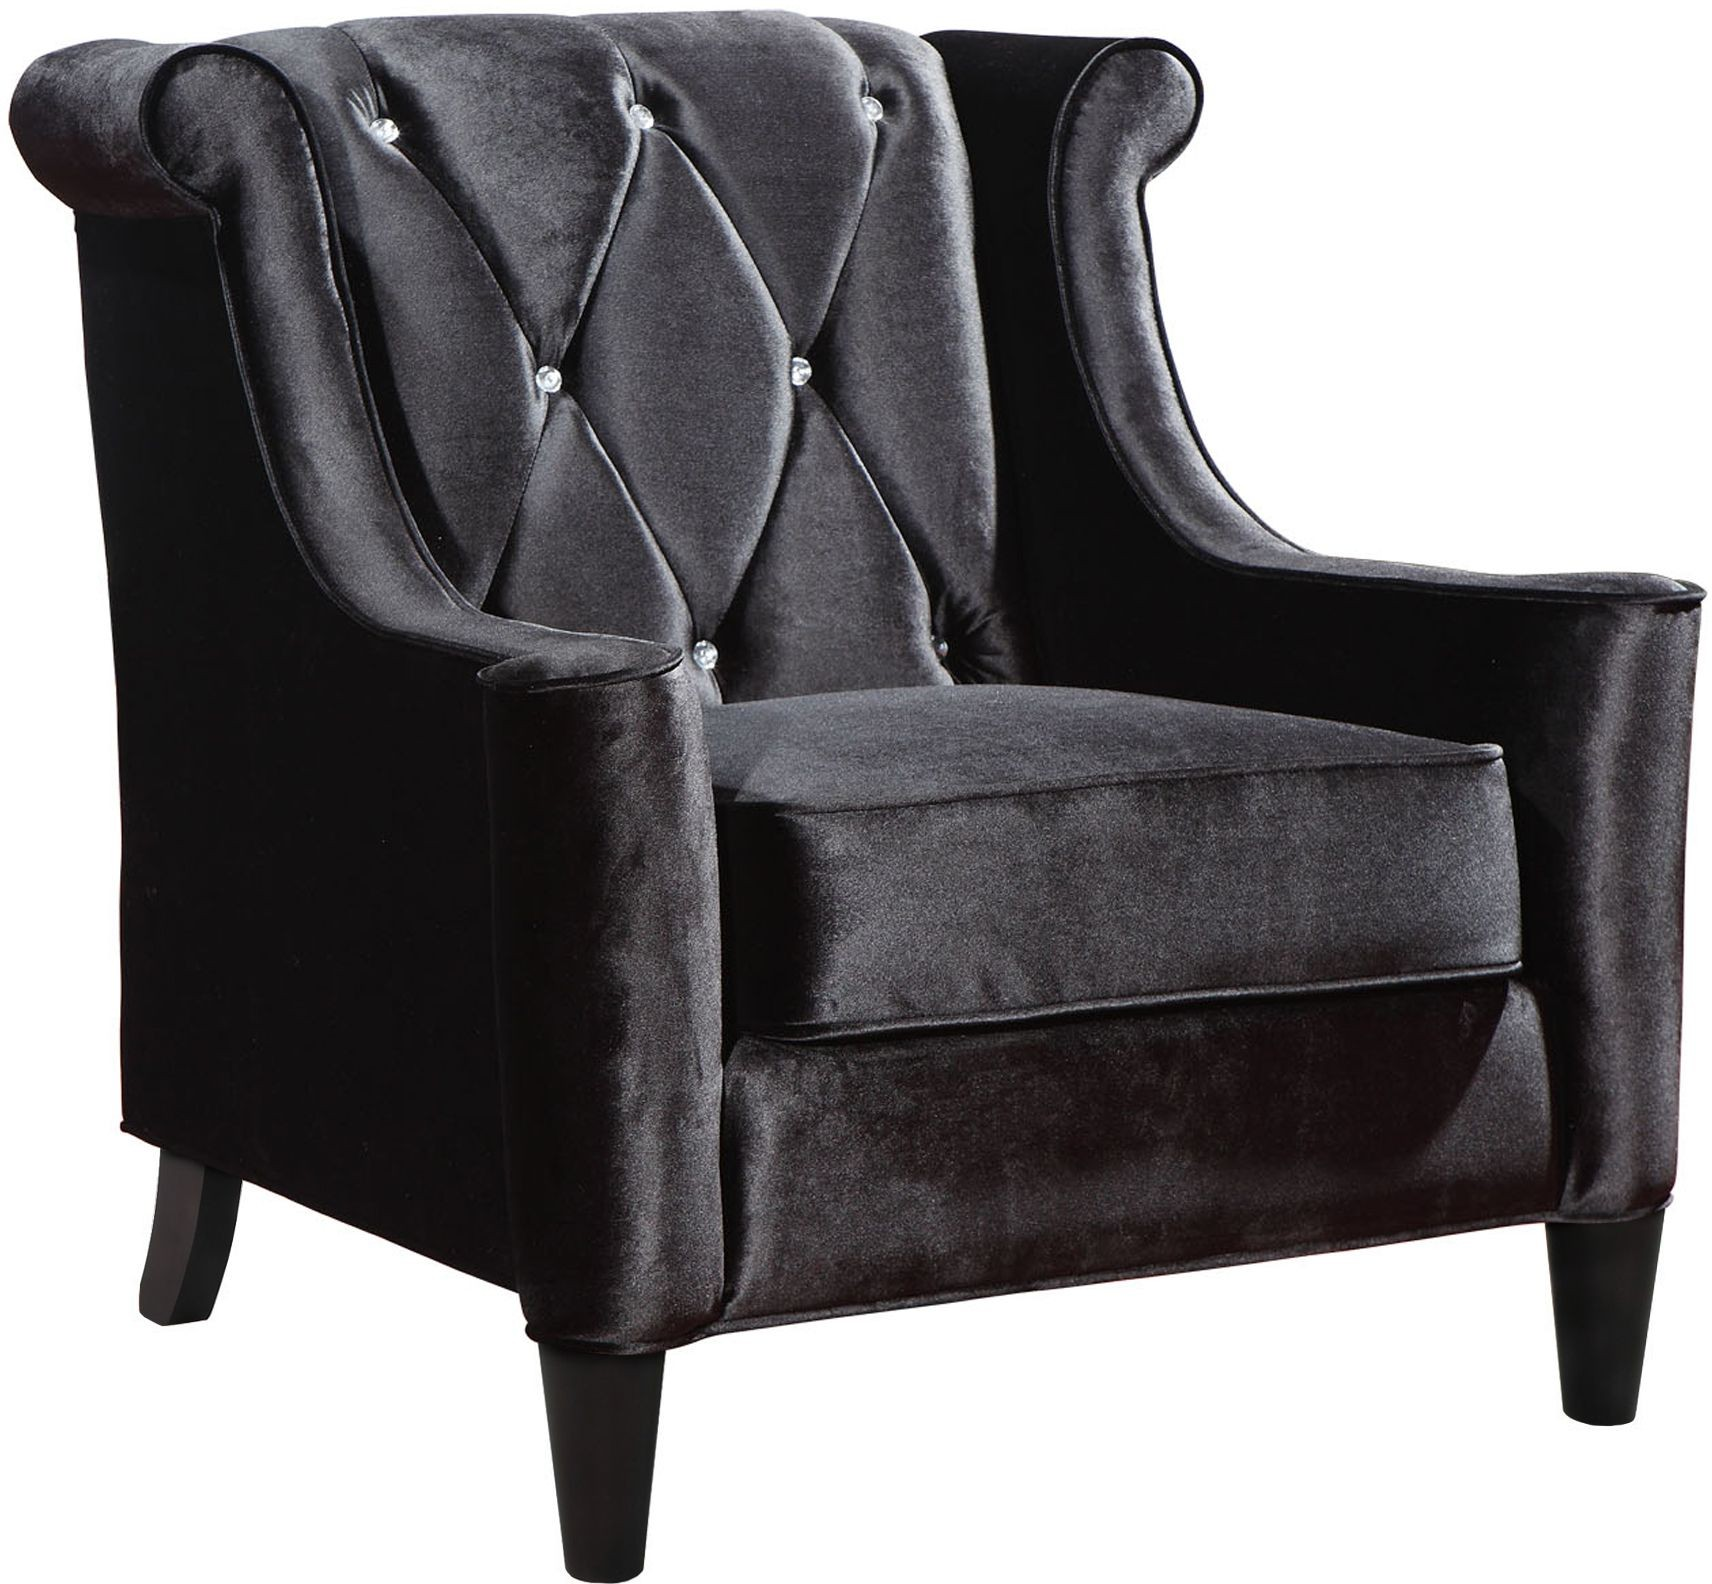 Black Velvet Chair Barrister Black Velvet With Crystal Buttons Chair